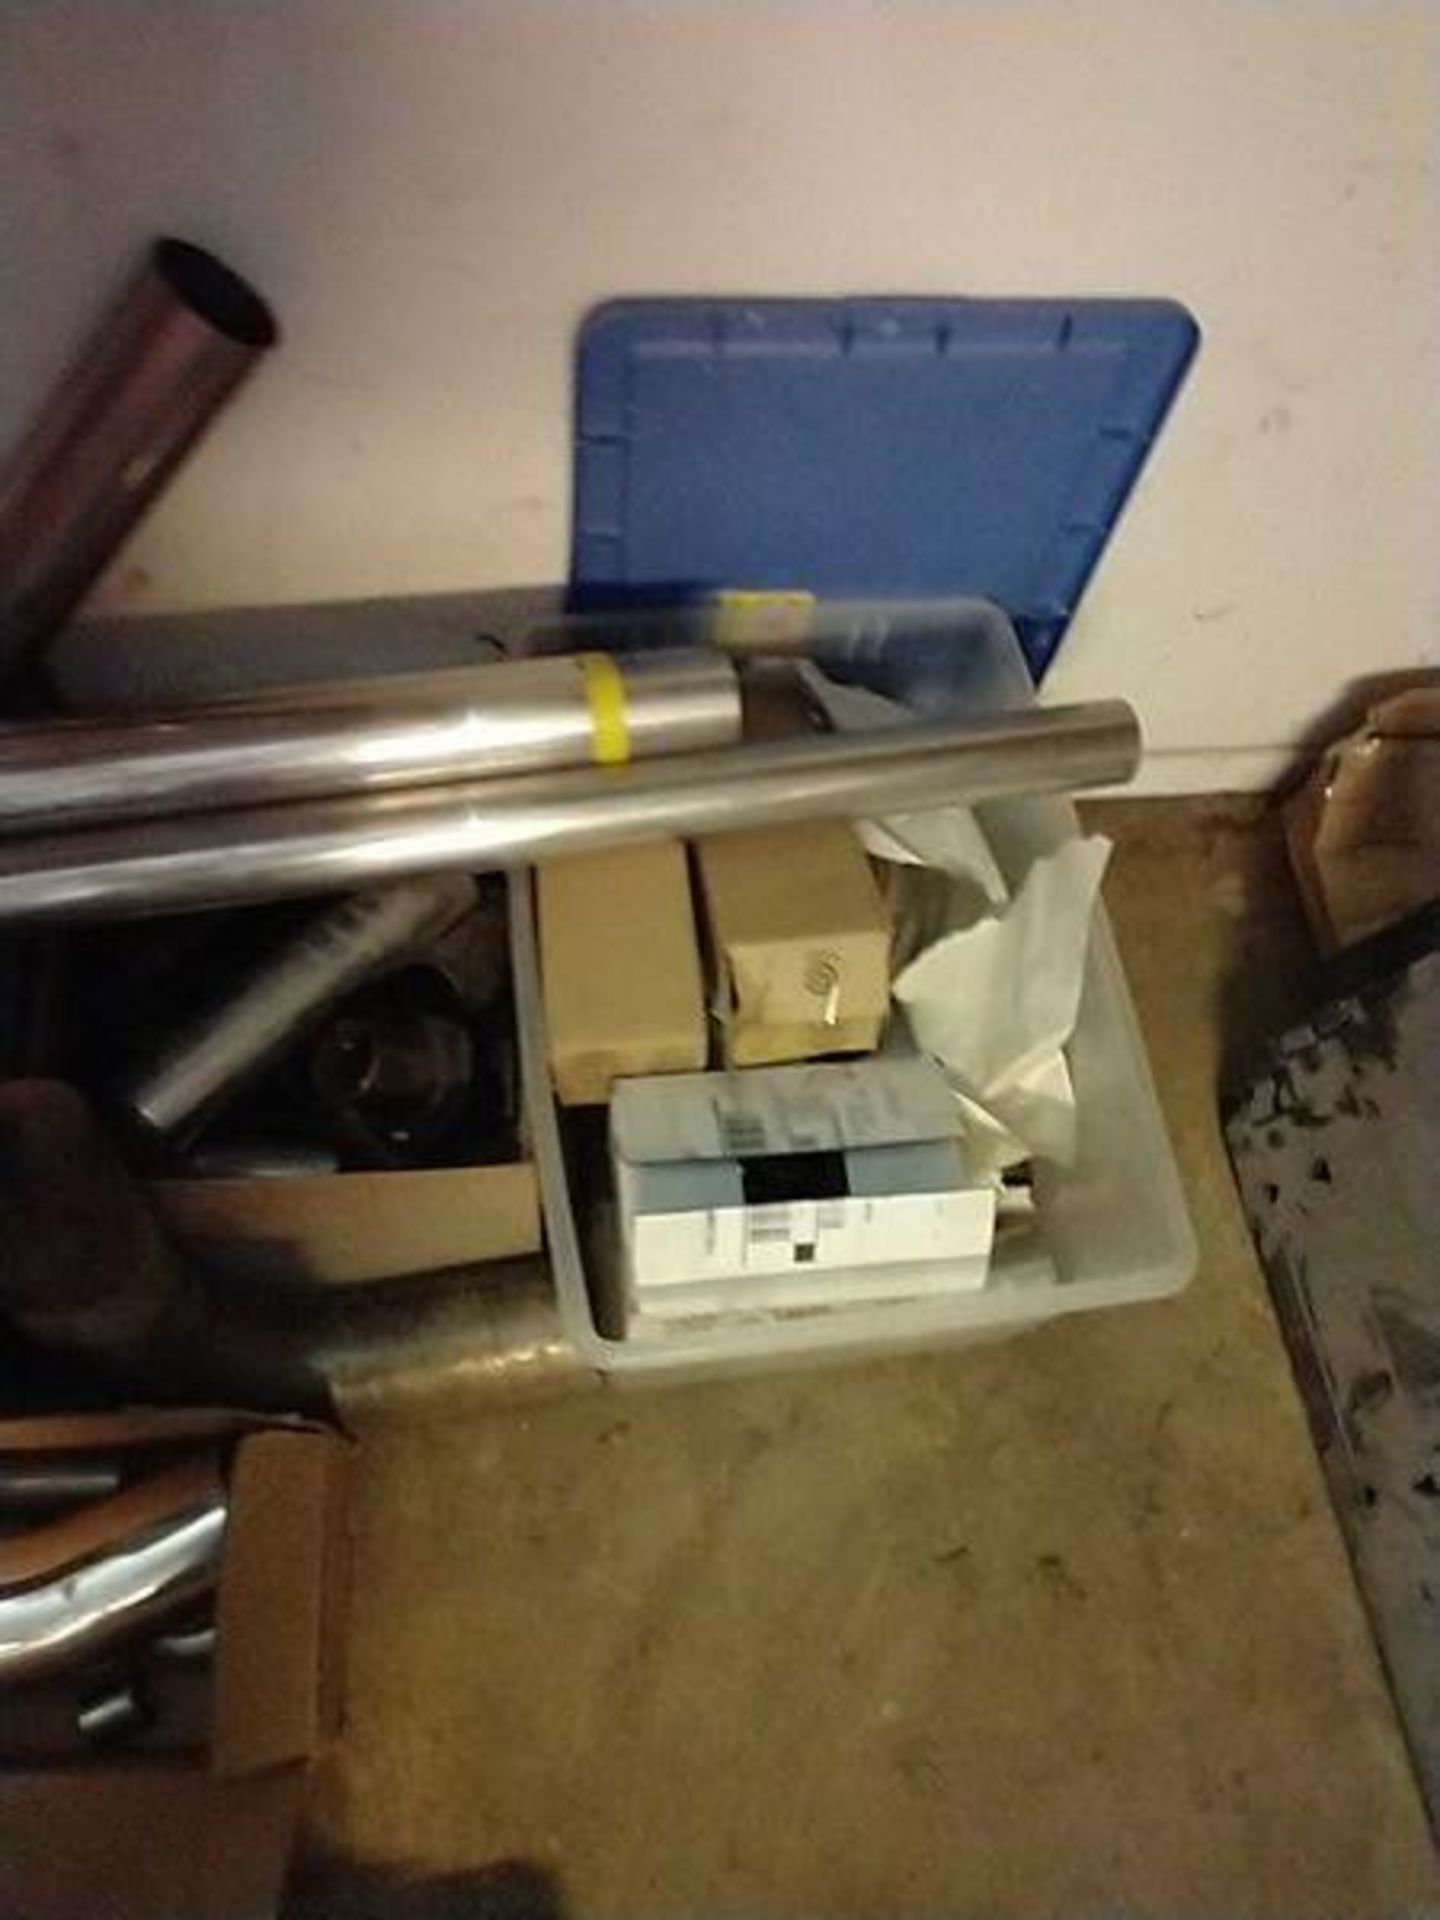 LOT OF ASSORTED MUFFLER PARTS - Image 4 of 4